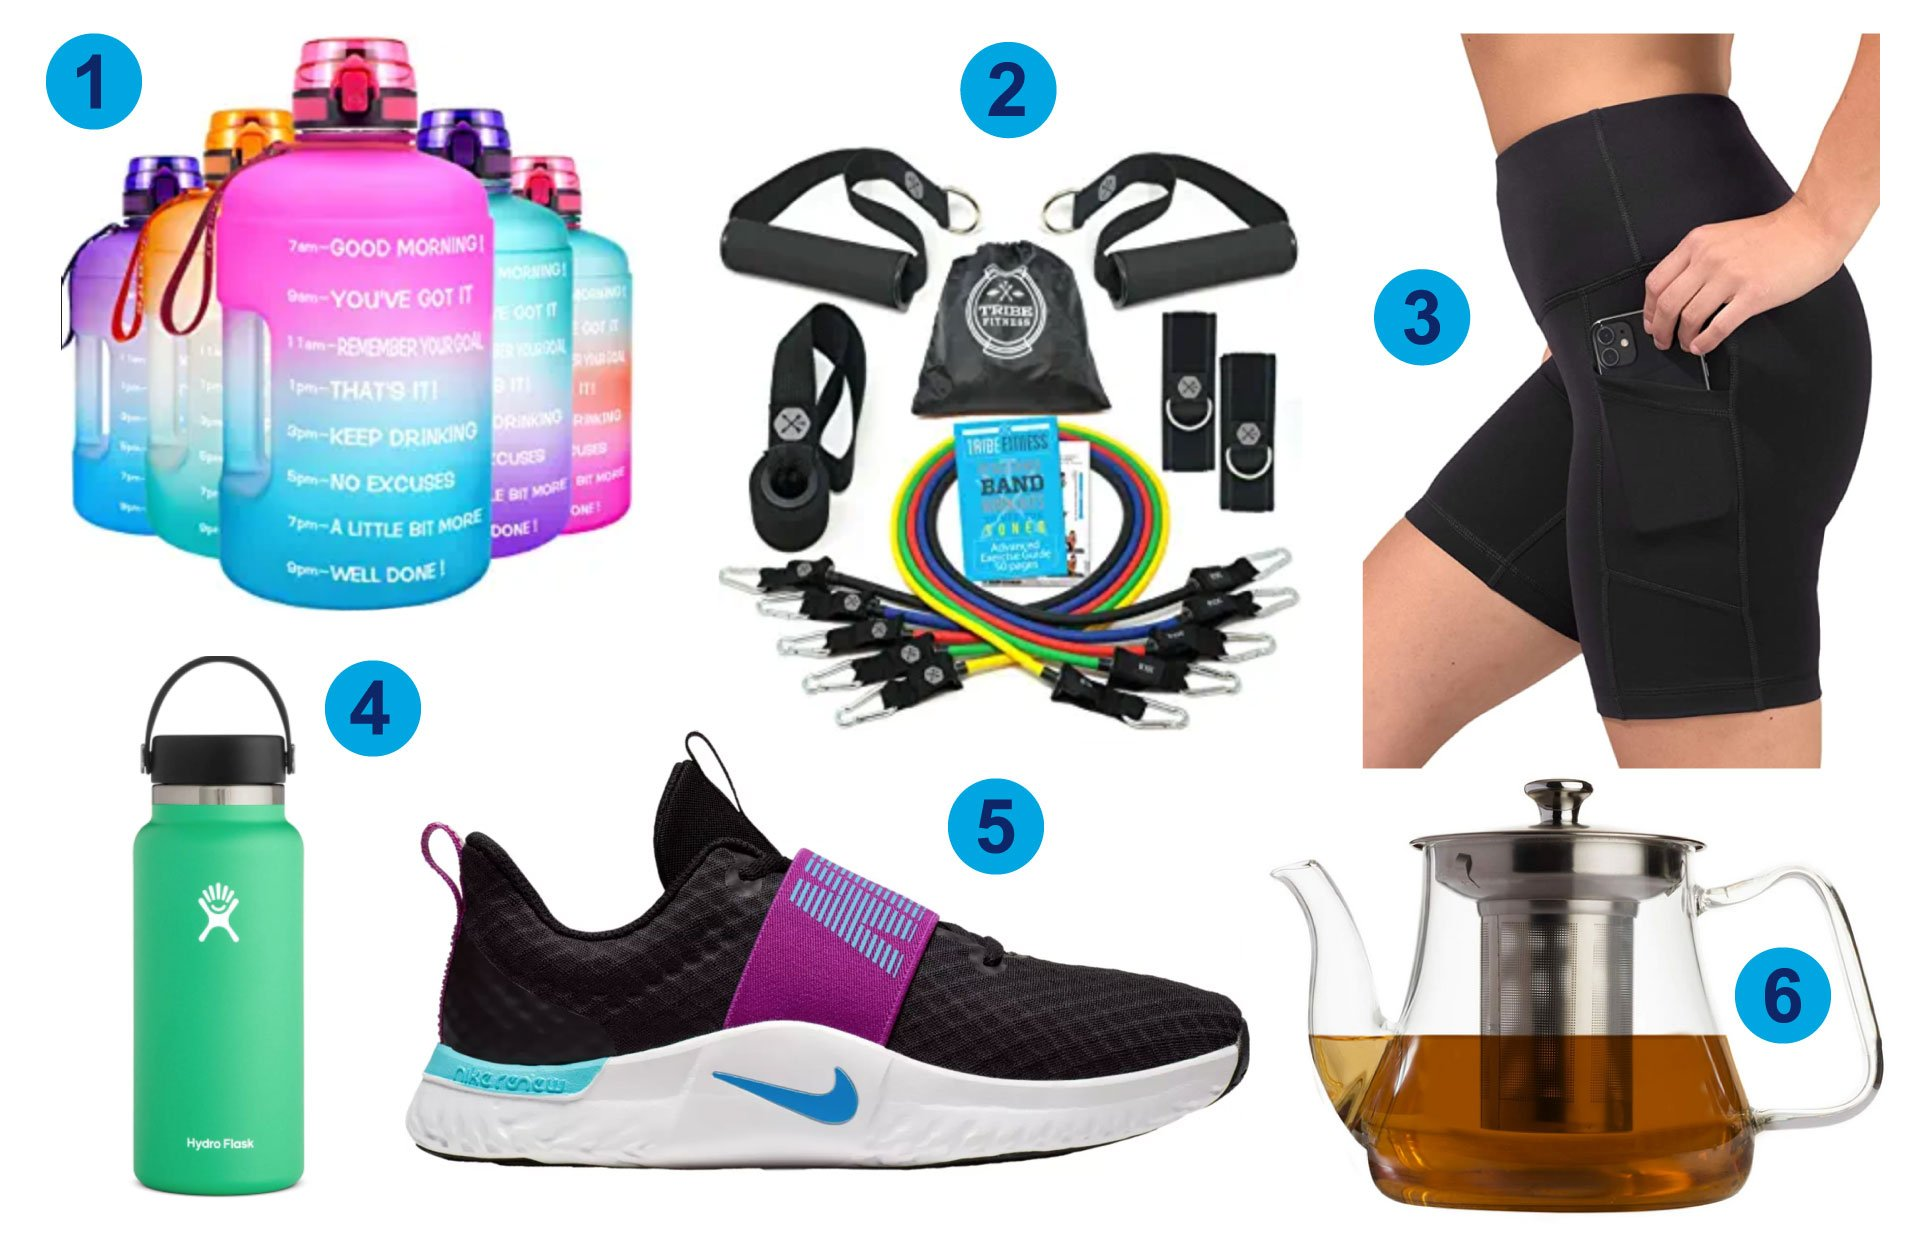 2020-12-02_CWC-2020-Purchases_Health-Wellness